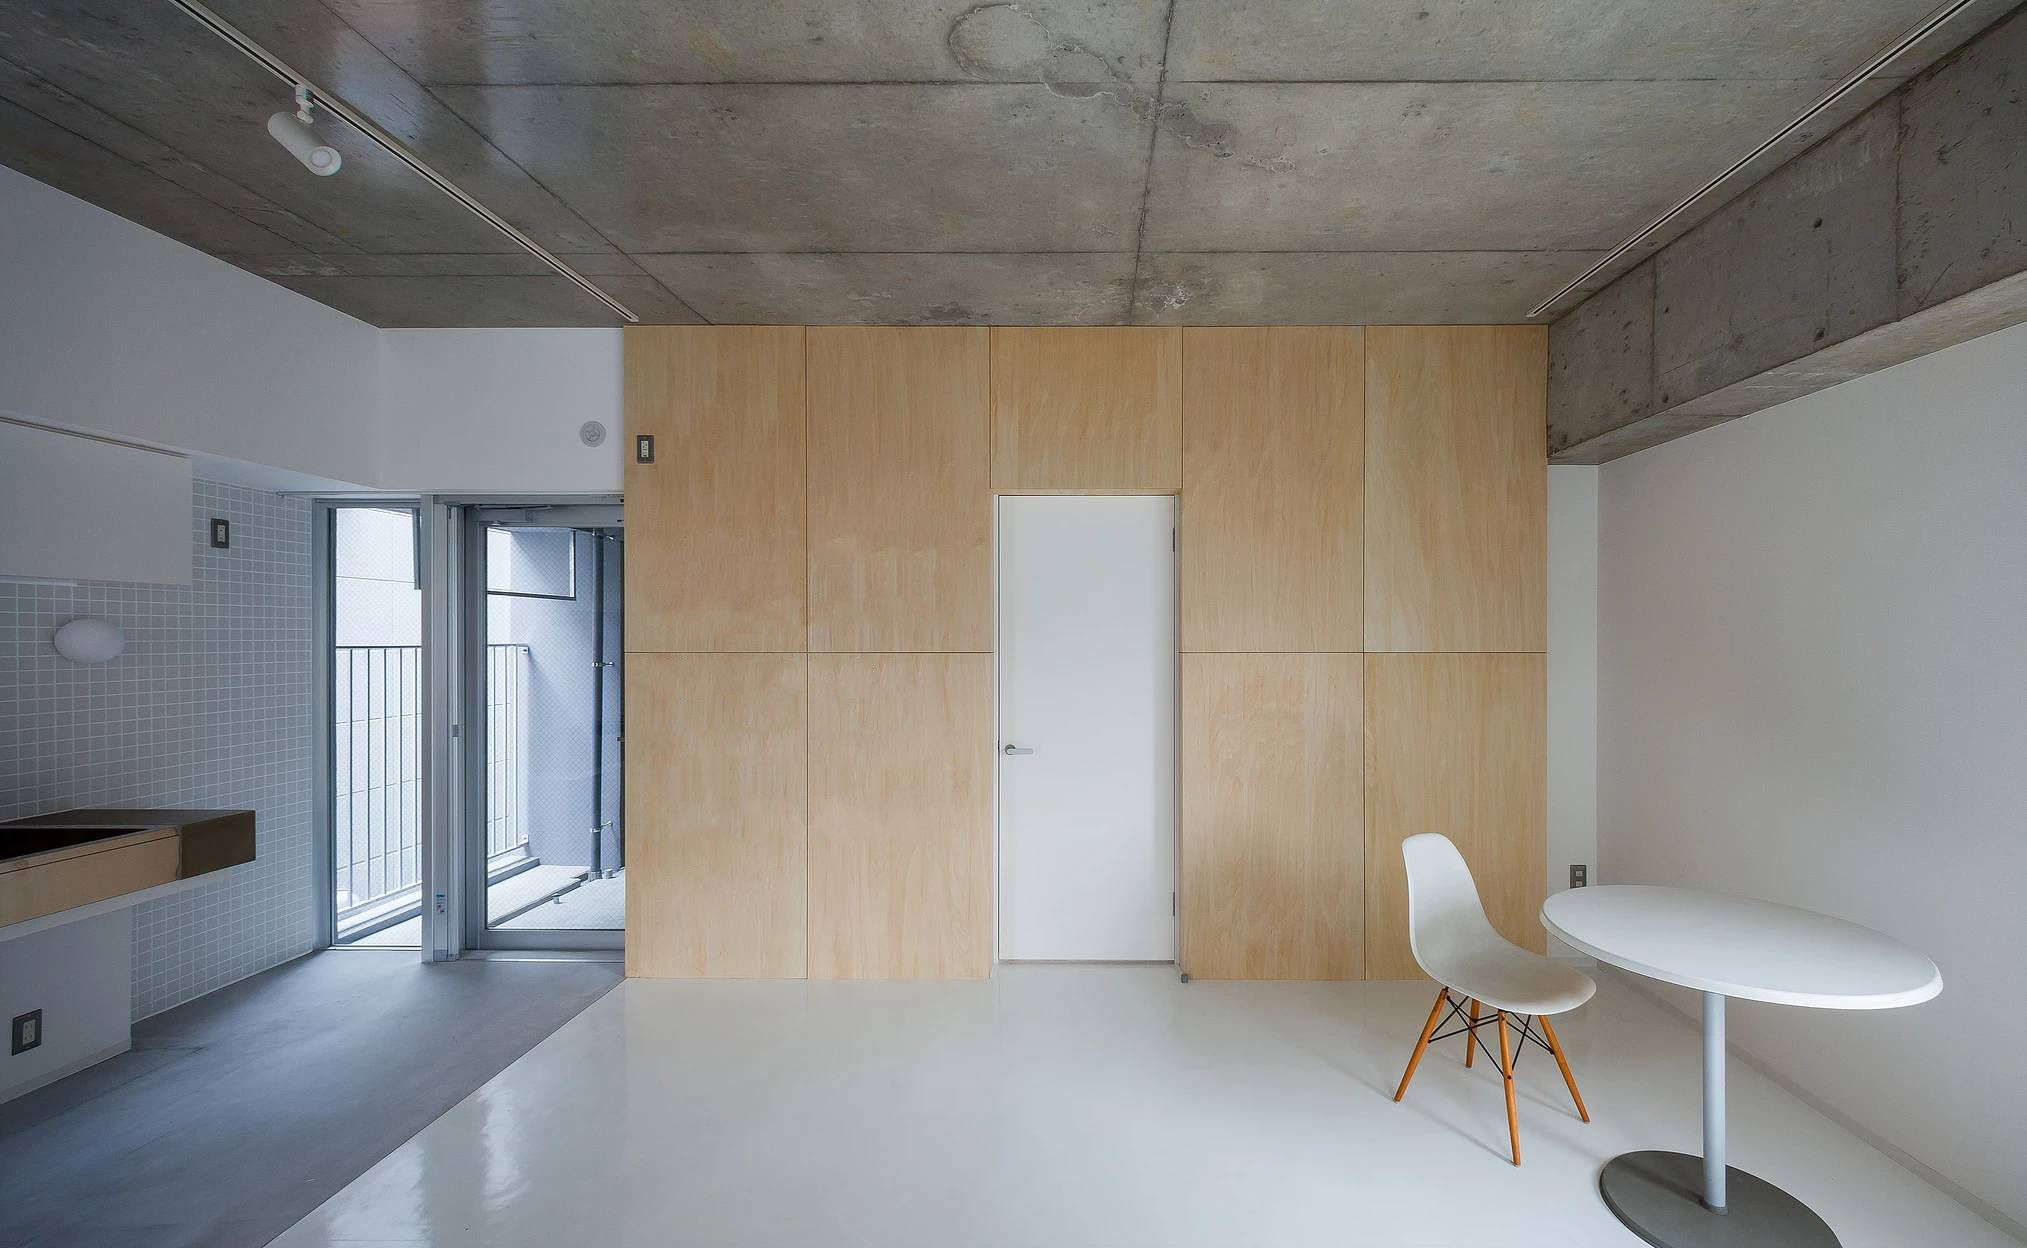 Kudo is a minimalist multi-residence located in Nagoya, Japan, designed by WORKCUBE. Although the space is small, an internal courtyard allows for additional natural light to enter the space without compromise to privacy. The complex has a garage specifically for bicycles, and utilizes a camera-equipped intercom. The entrance is outfitted with two large Douglas Fir doors. The floors are epoxy white for easy cleaning, and maintains a minimalist aesthetic.